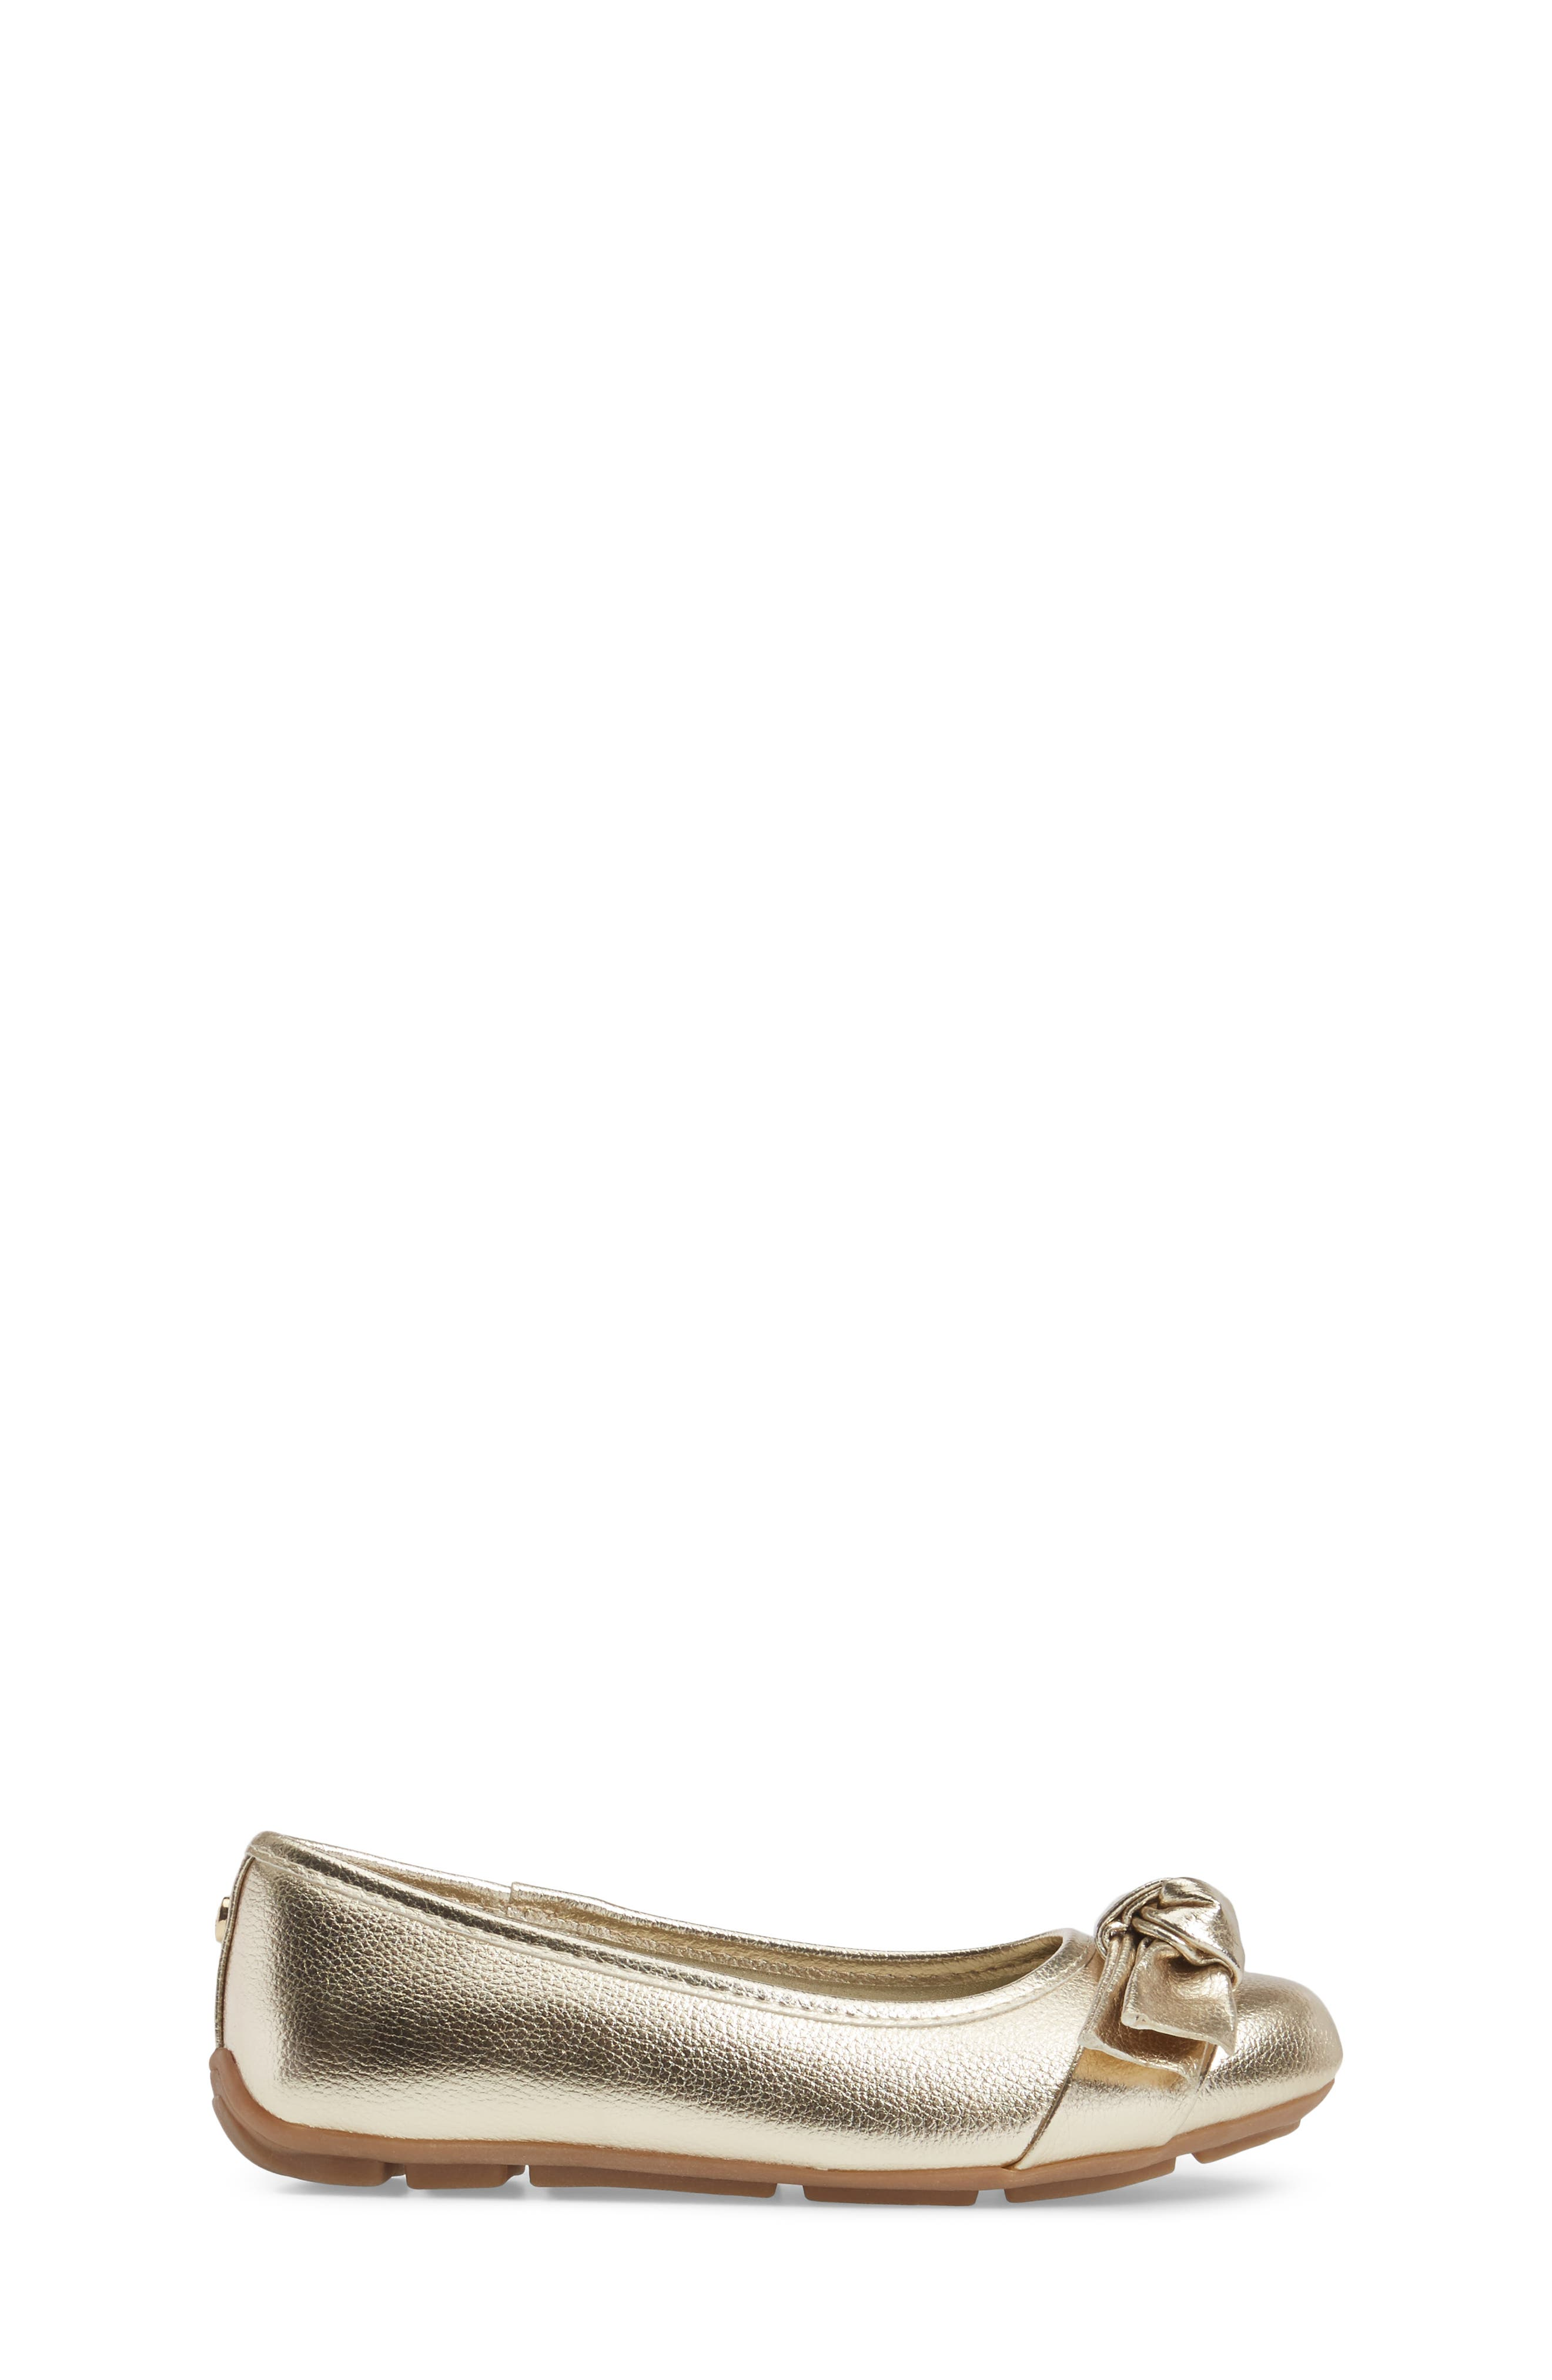 Rover Cora Ballet Flat,                             Alternate thumbnail 3, color,                             Gold